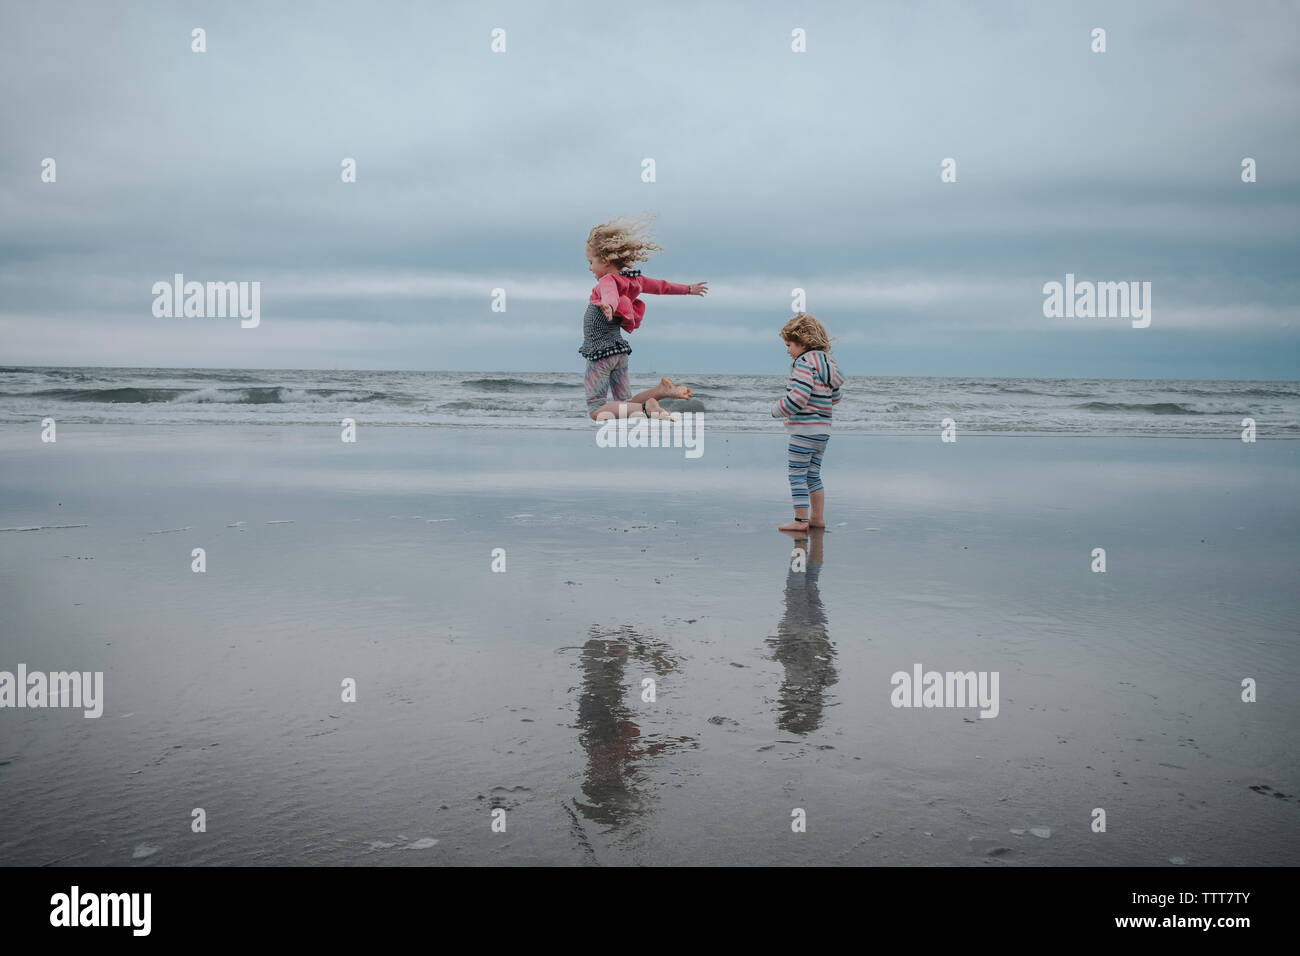 Carefree girl jumping while sister standing at beach against sky - Stock Image